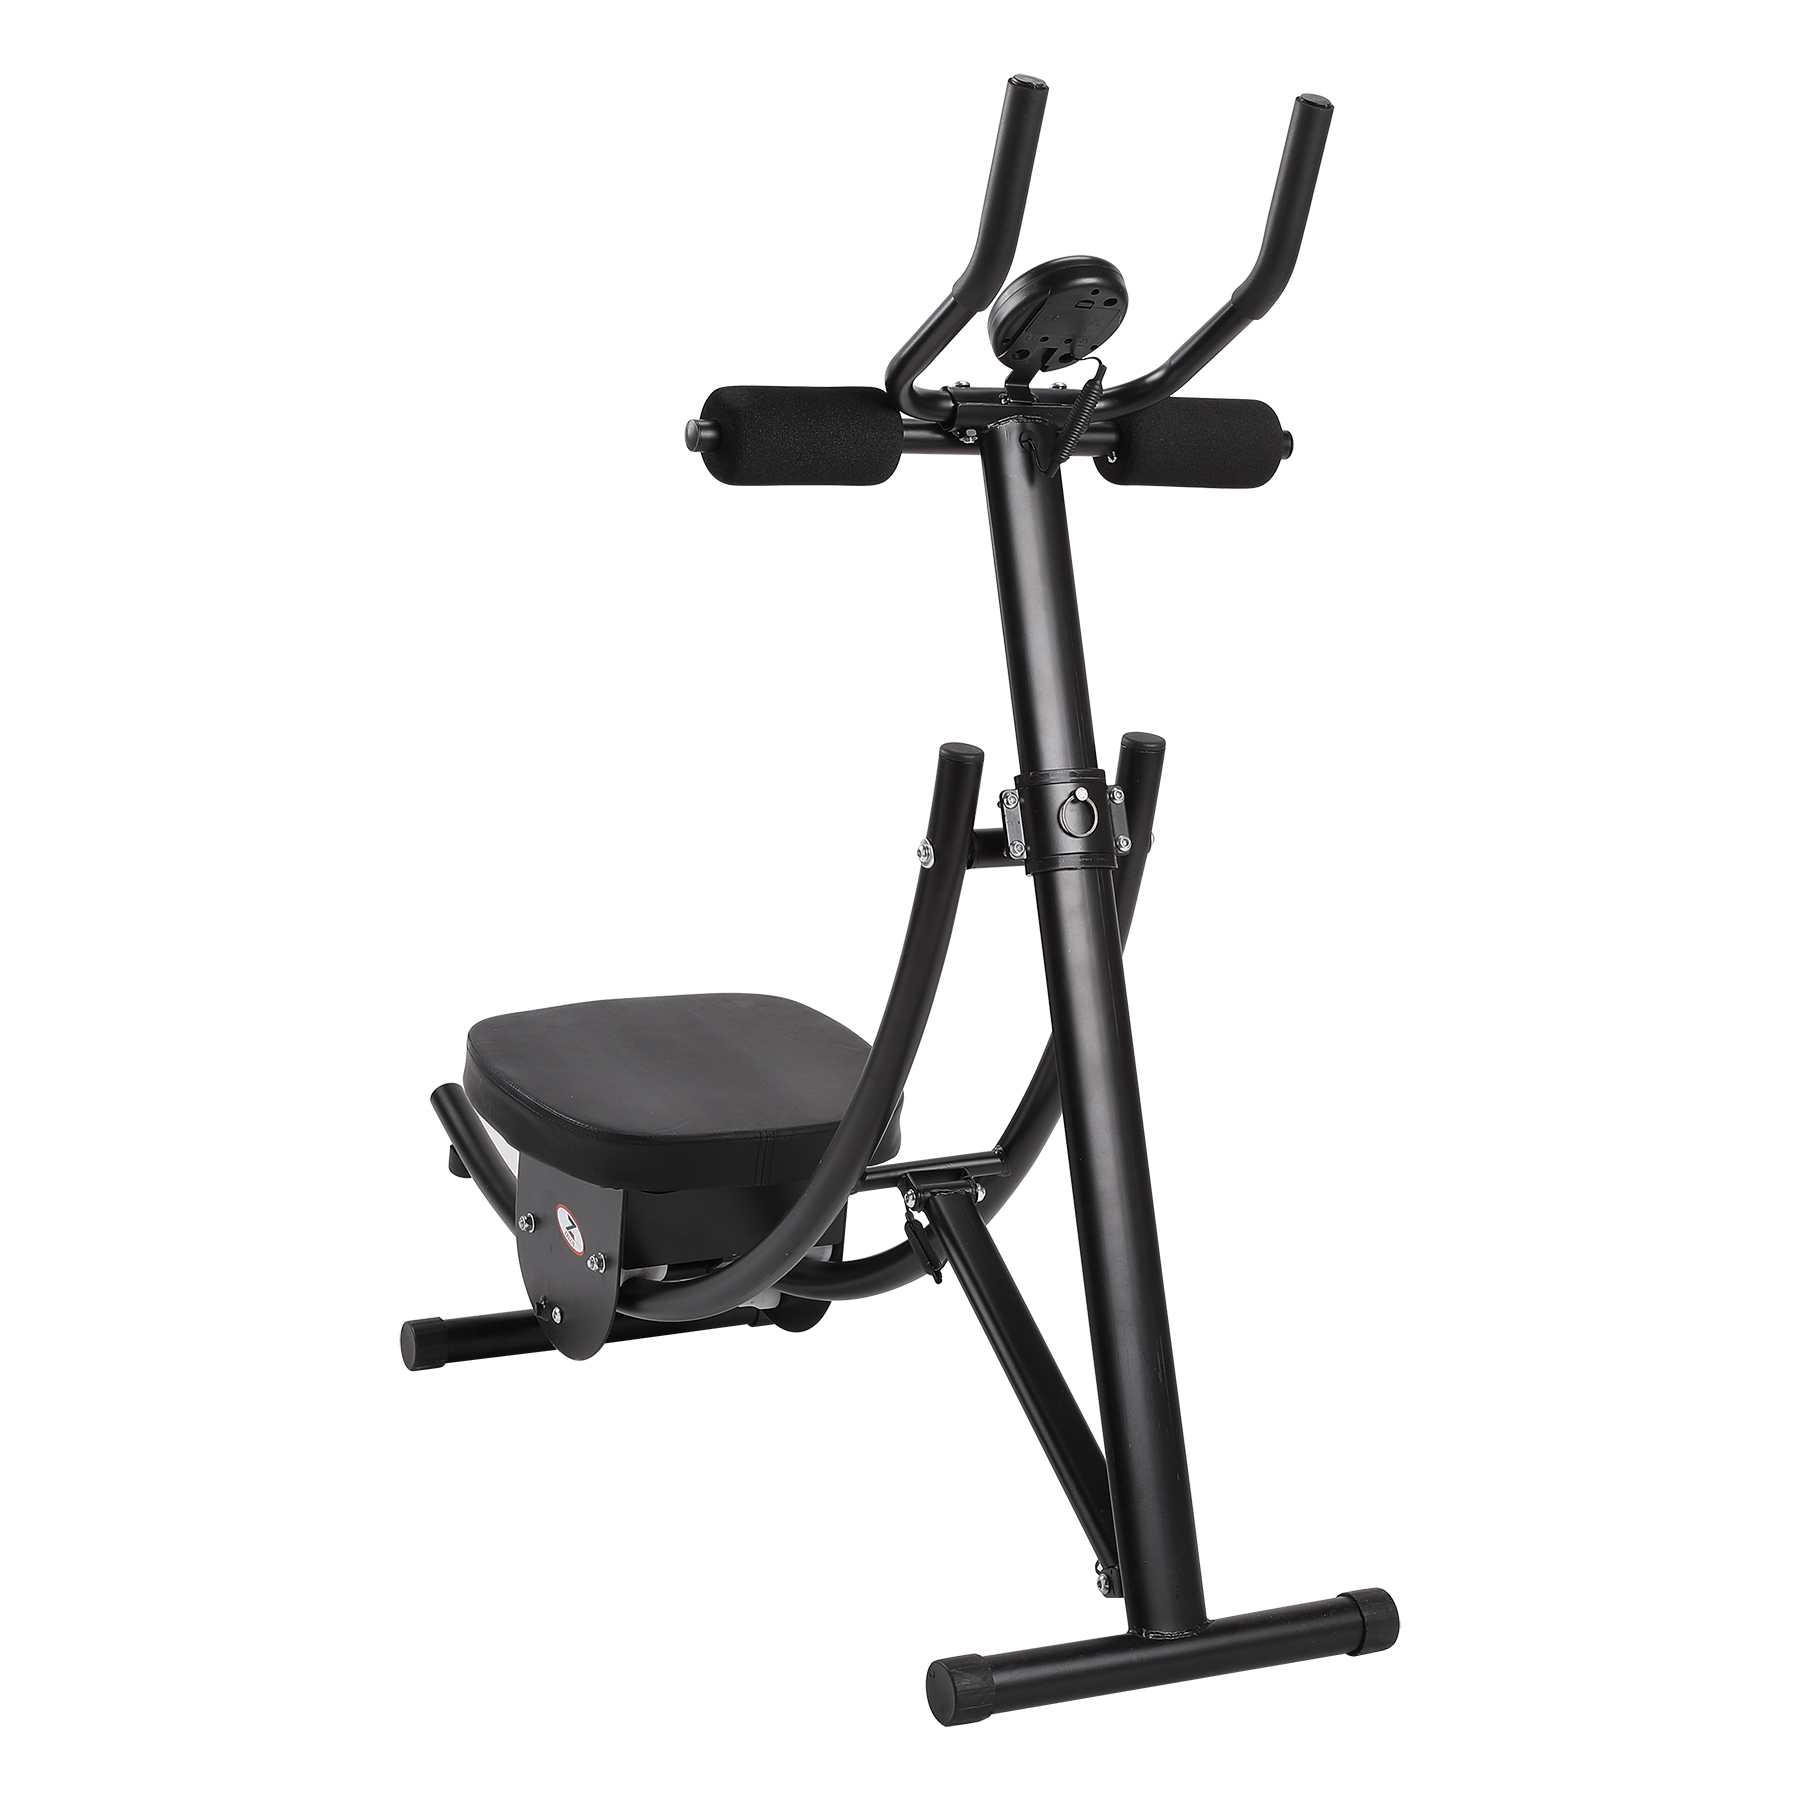 Abdominal Coaster Fitness Equipment with Bottom-up Design for Home Gym